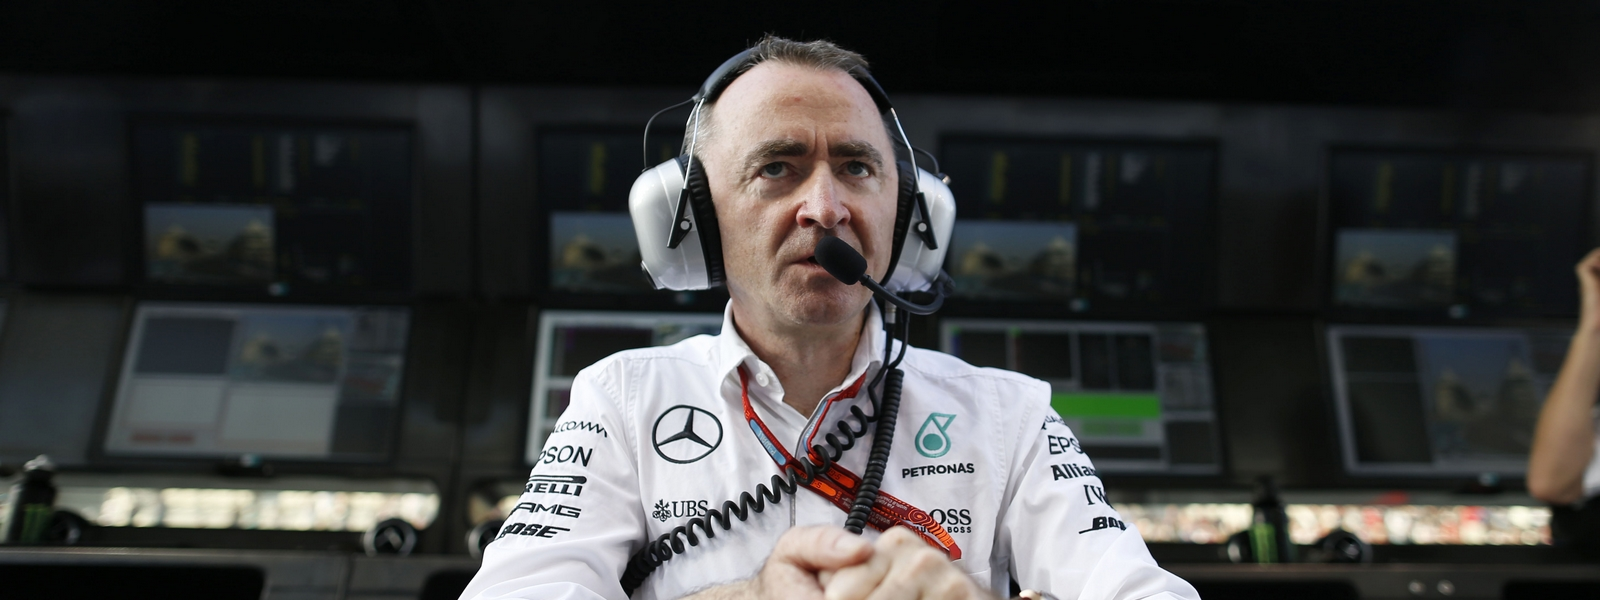 Motorsports: FIA Formula One World Championship 2016, Grand Prix of Abu Dhabi,  Paddy Lowe *** Local Caption *** +++ www.hoch-zwei.net +++ copyright: HOCH ZWEI +++